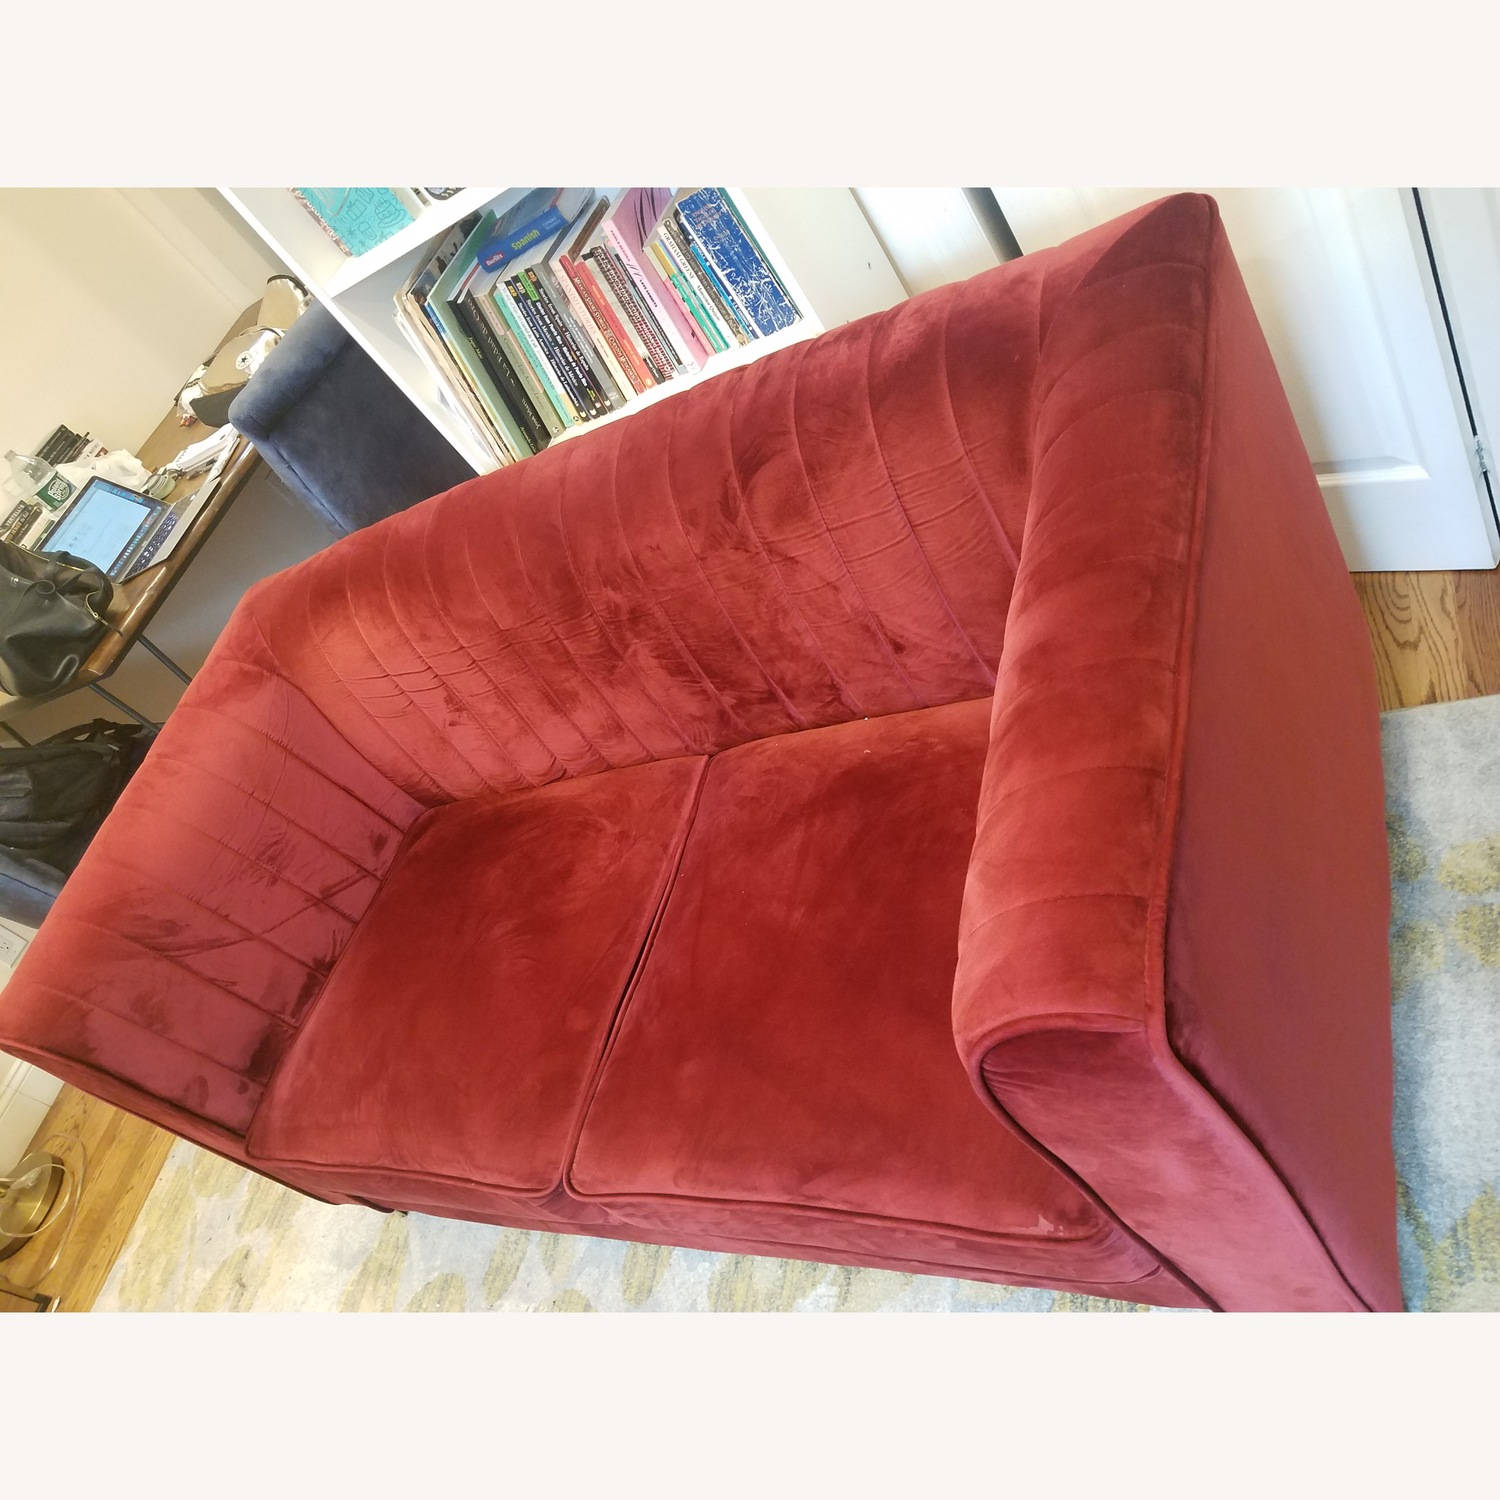 Two-seat red sofa/loveseat